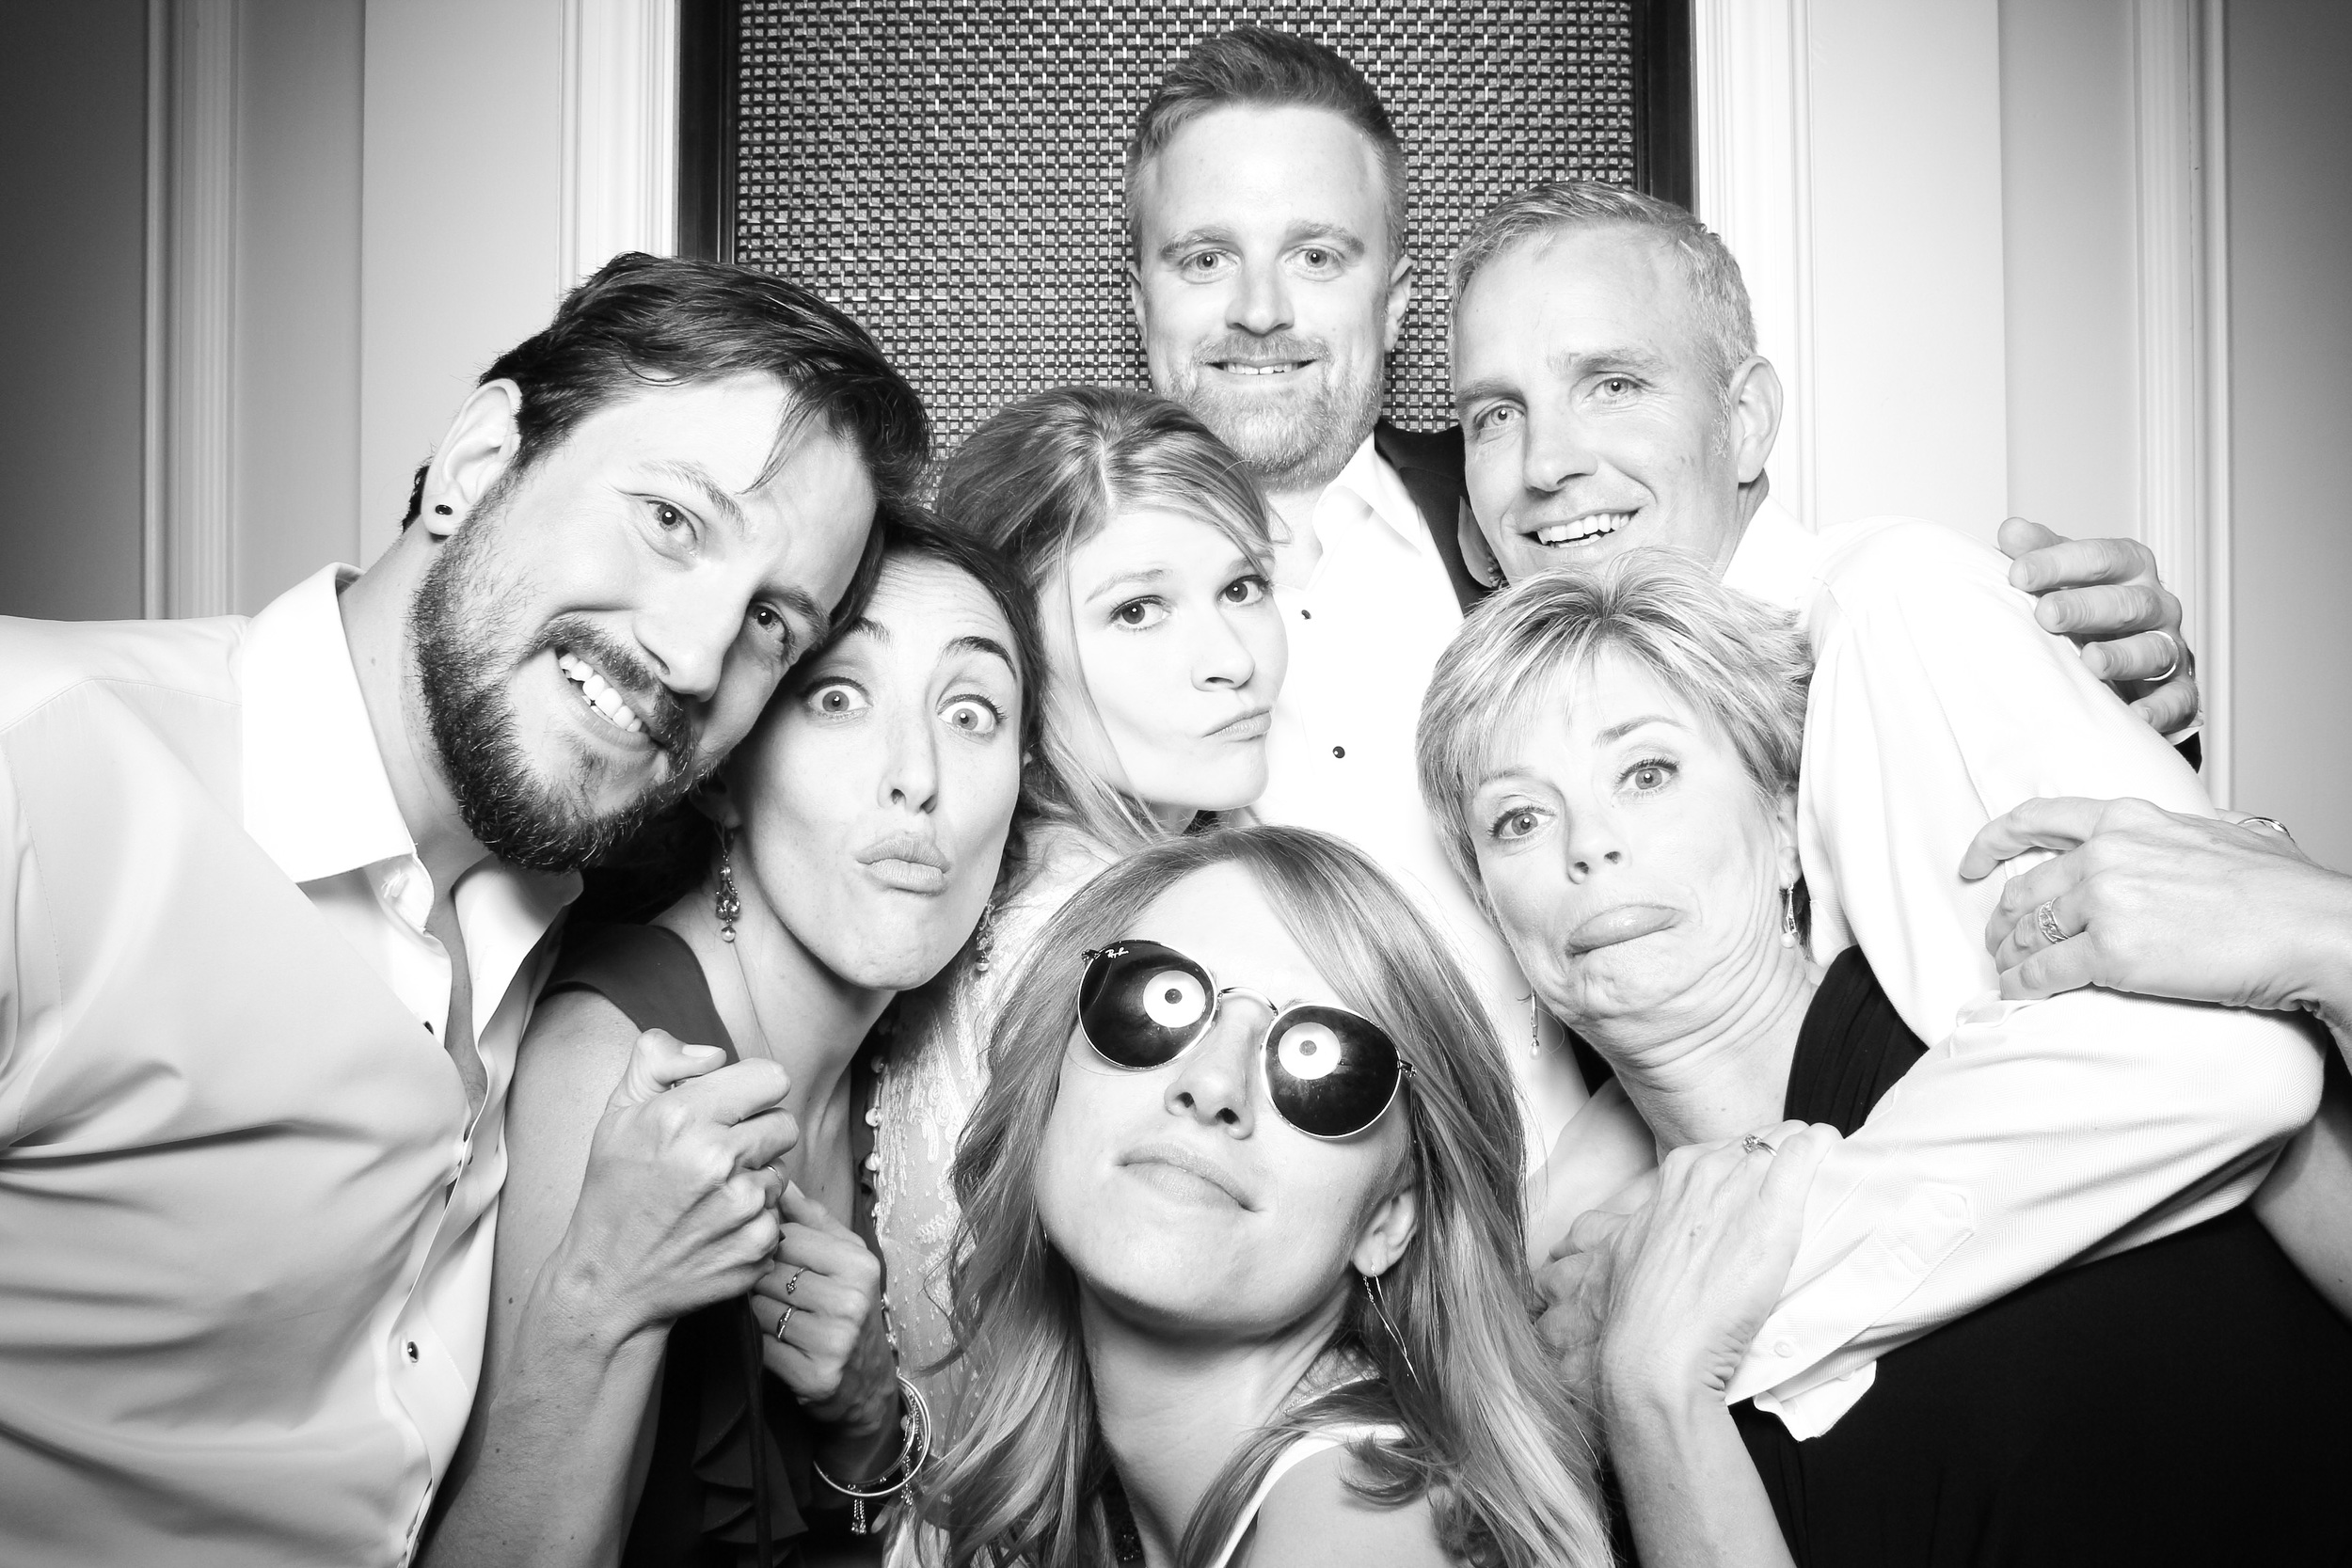 The bride and groom pose for a Fotio photo booth picture with family and friends at the Chicago History Museum!